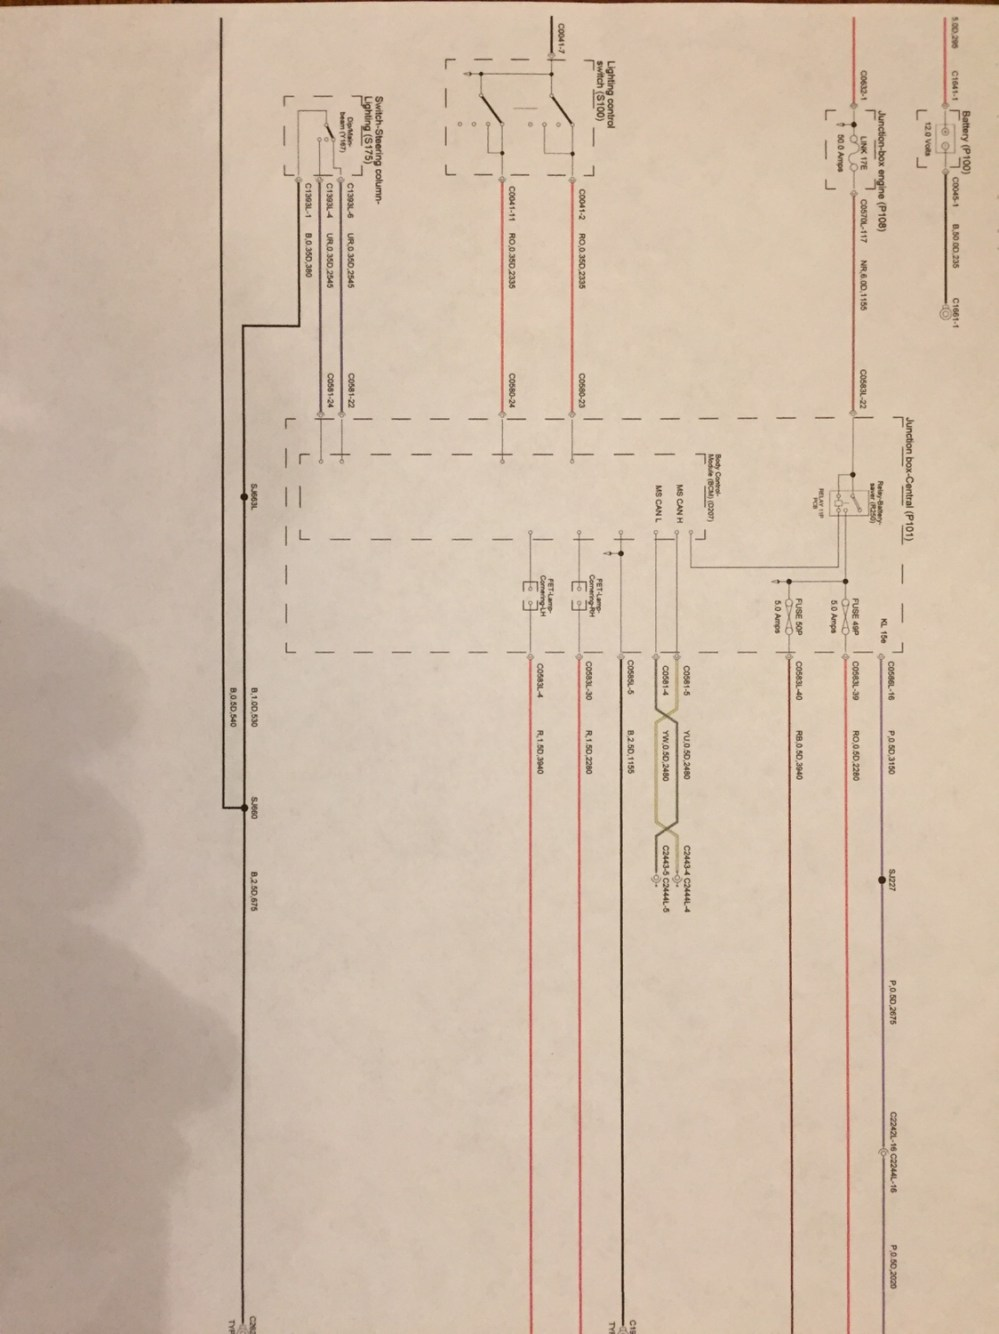 medium resolution of wiring diagram req for headlight switch 2006 rrs and 2012 clifford wiring diagram re q wiring diagram